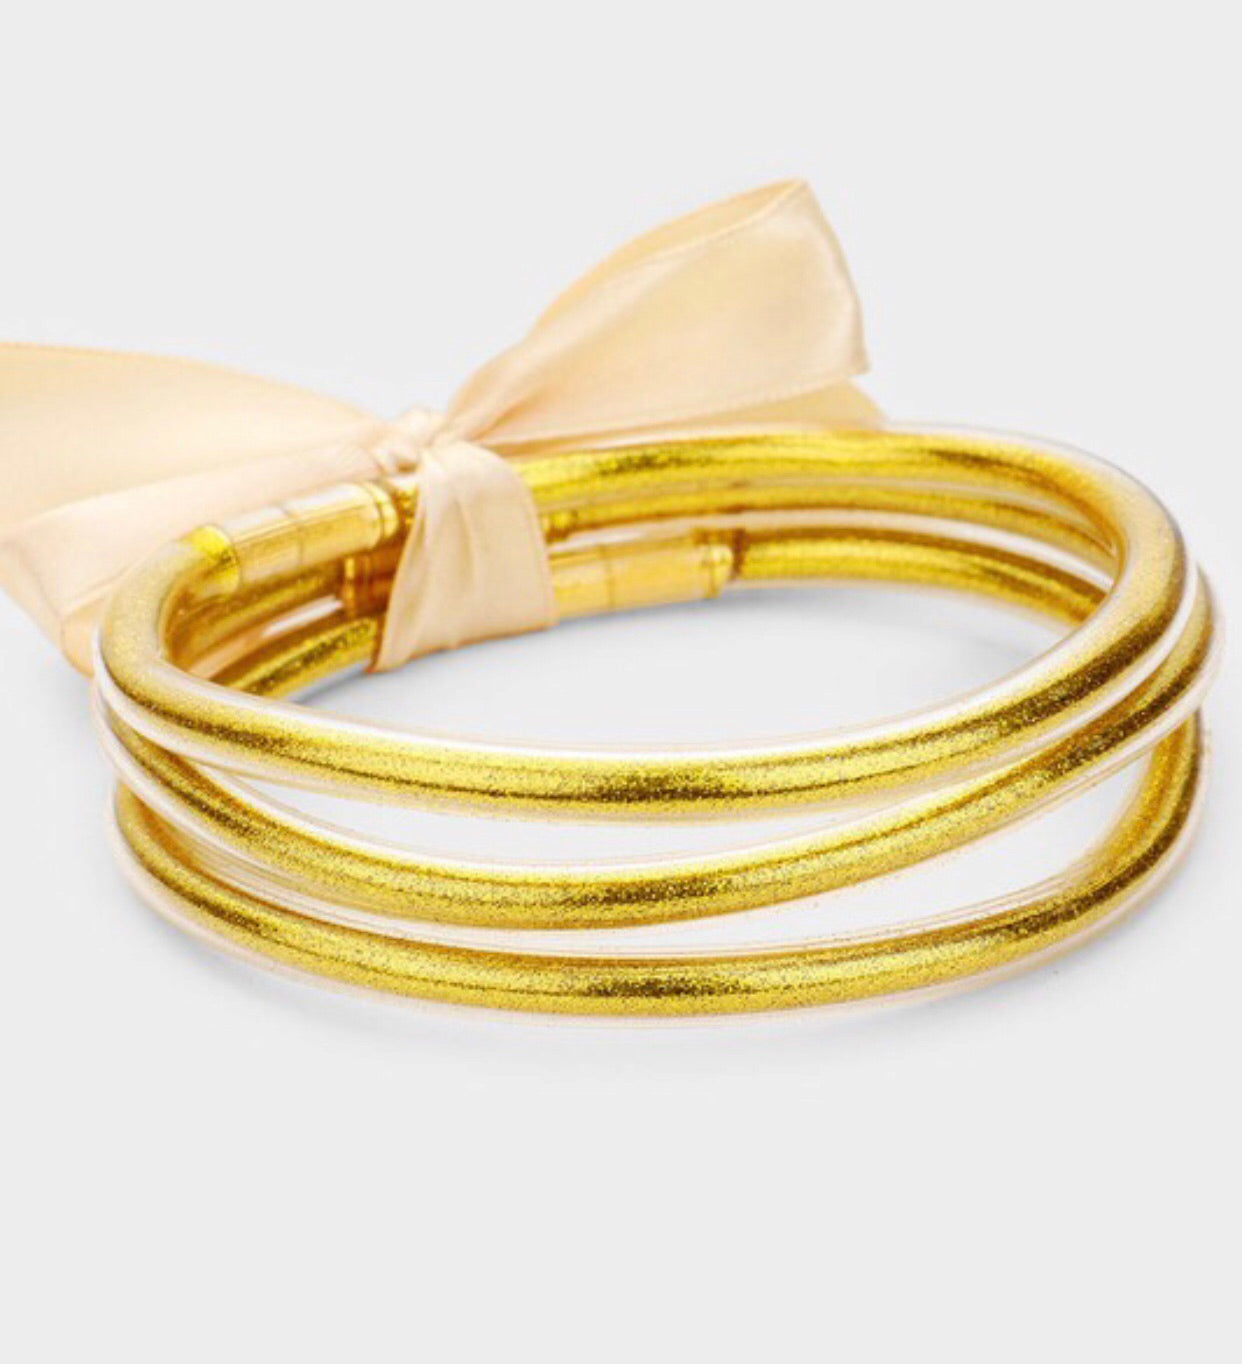 Flexible Gold Bangles- Set of 3